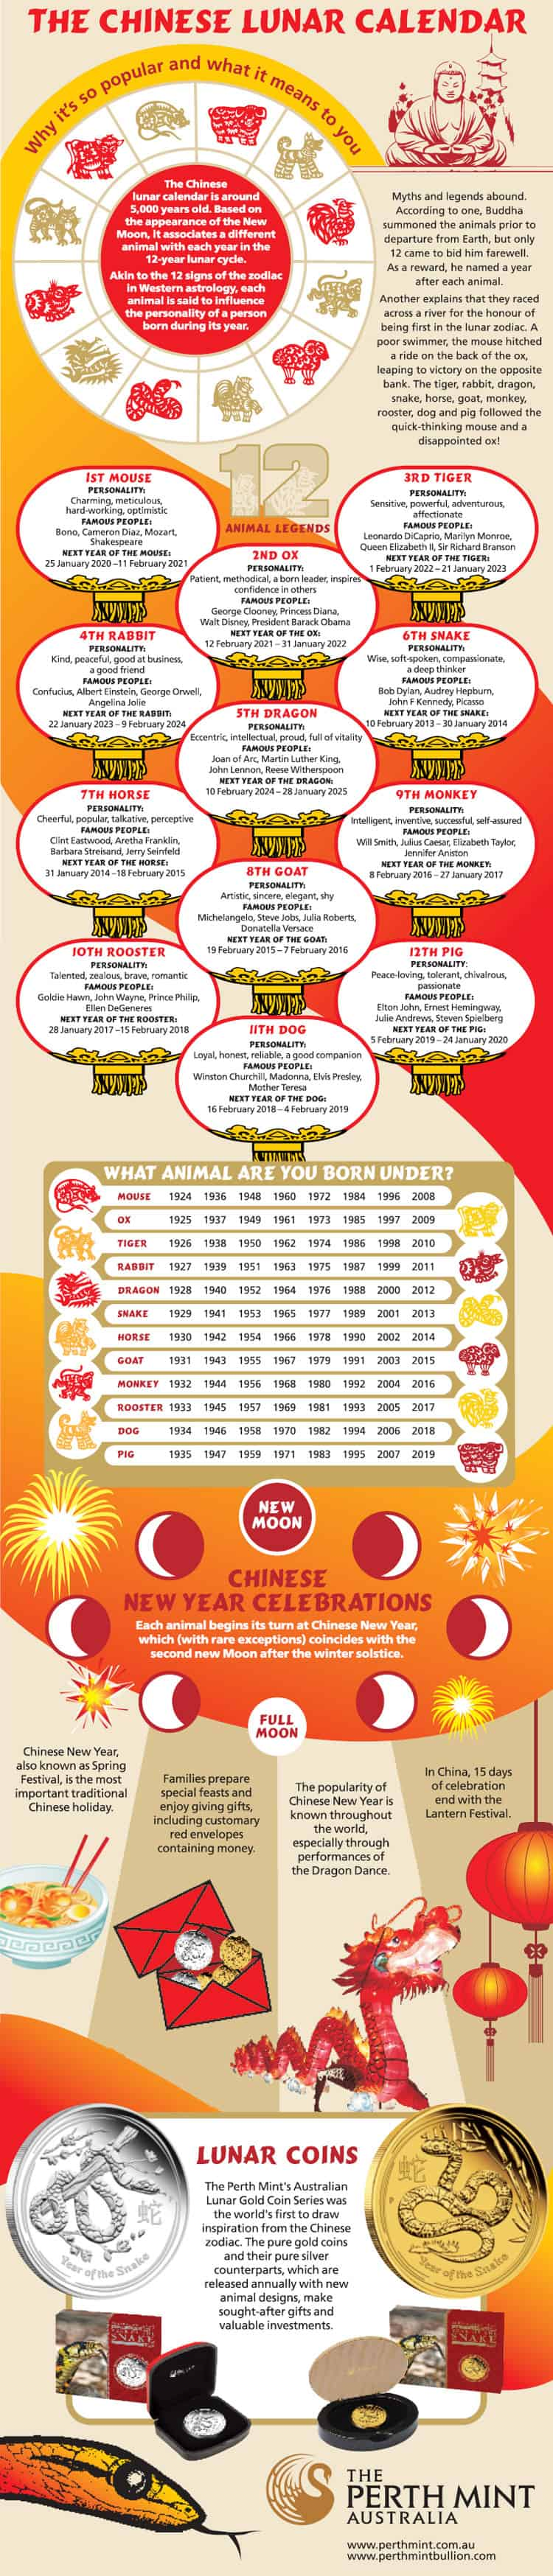 Chinese New Year Calendar Zodiac Chinese Zodiac Chinese New Year Calendar Chinese New Year 2015 The Year Of The Goat Daily